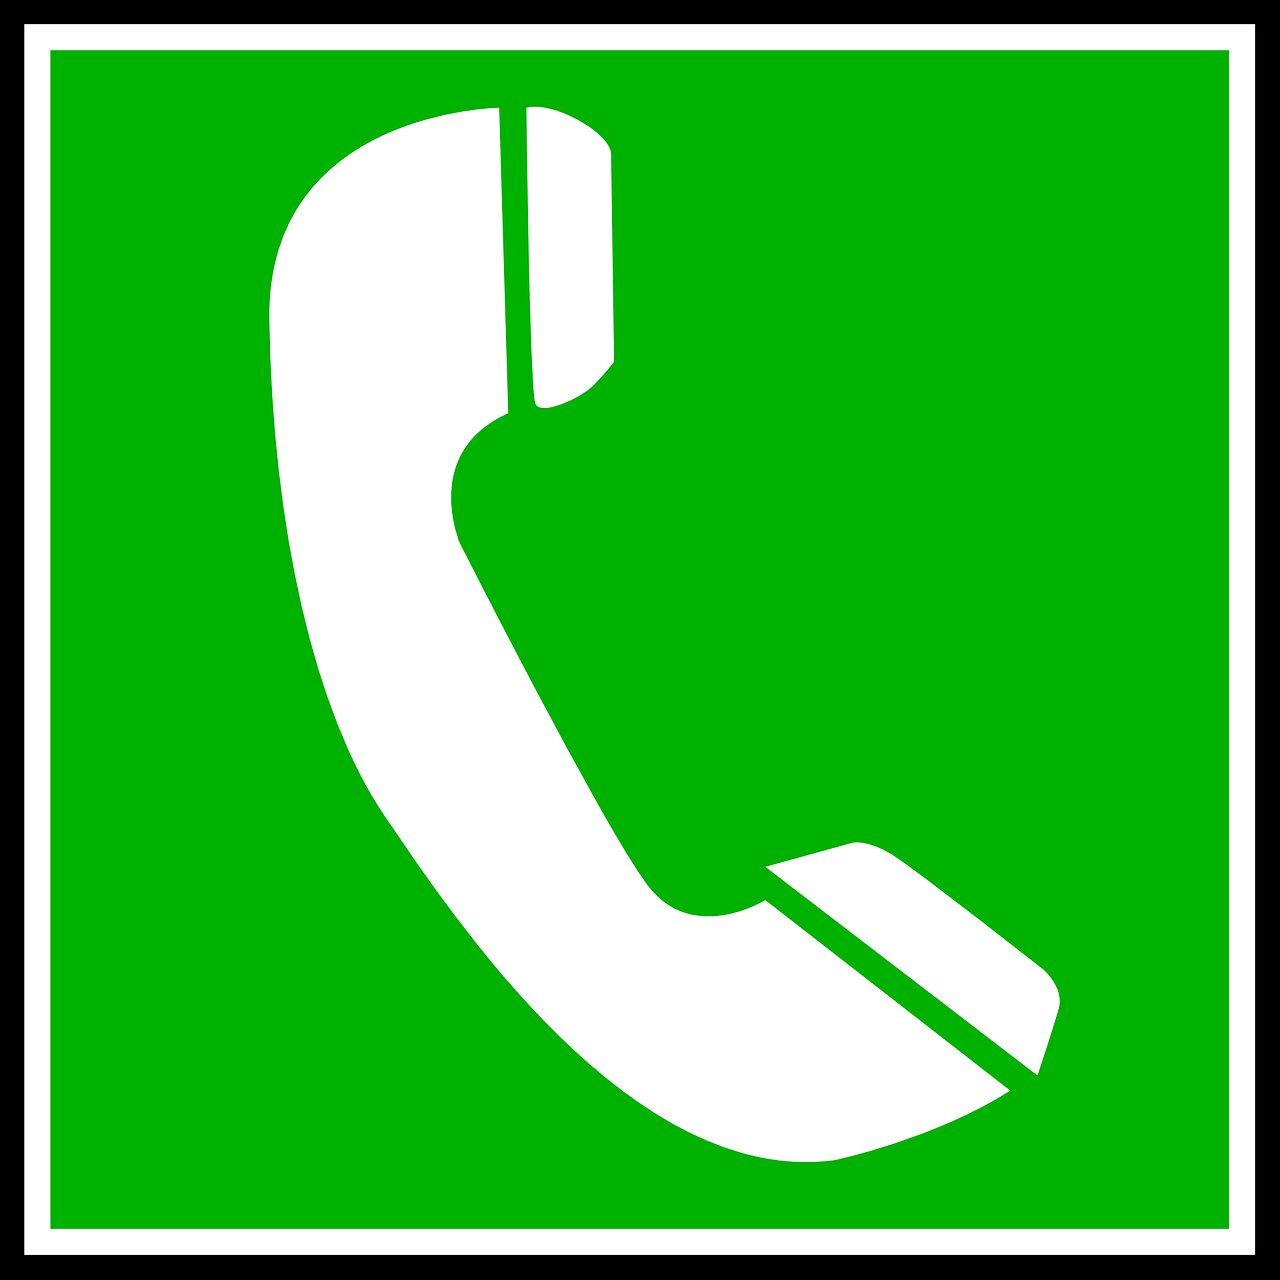 phone,receiver,telephone,communication,call,connection,retro,old,connect,device,chat,hand,vintage,green,dial,classic,object,old-fashioned,communicate,retro-styled,rotary,free vector graphics,free pictures, free photos, free images, royalty free, free illustrations